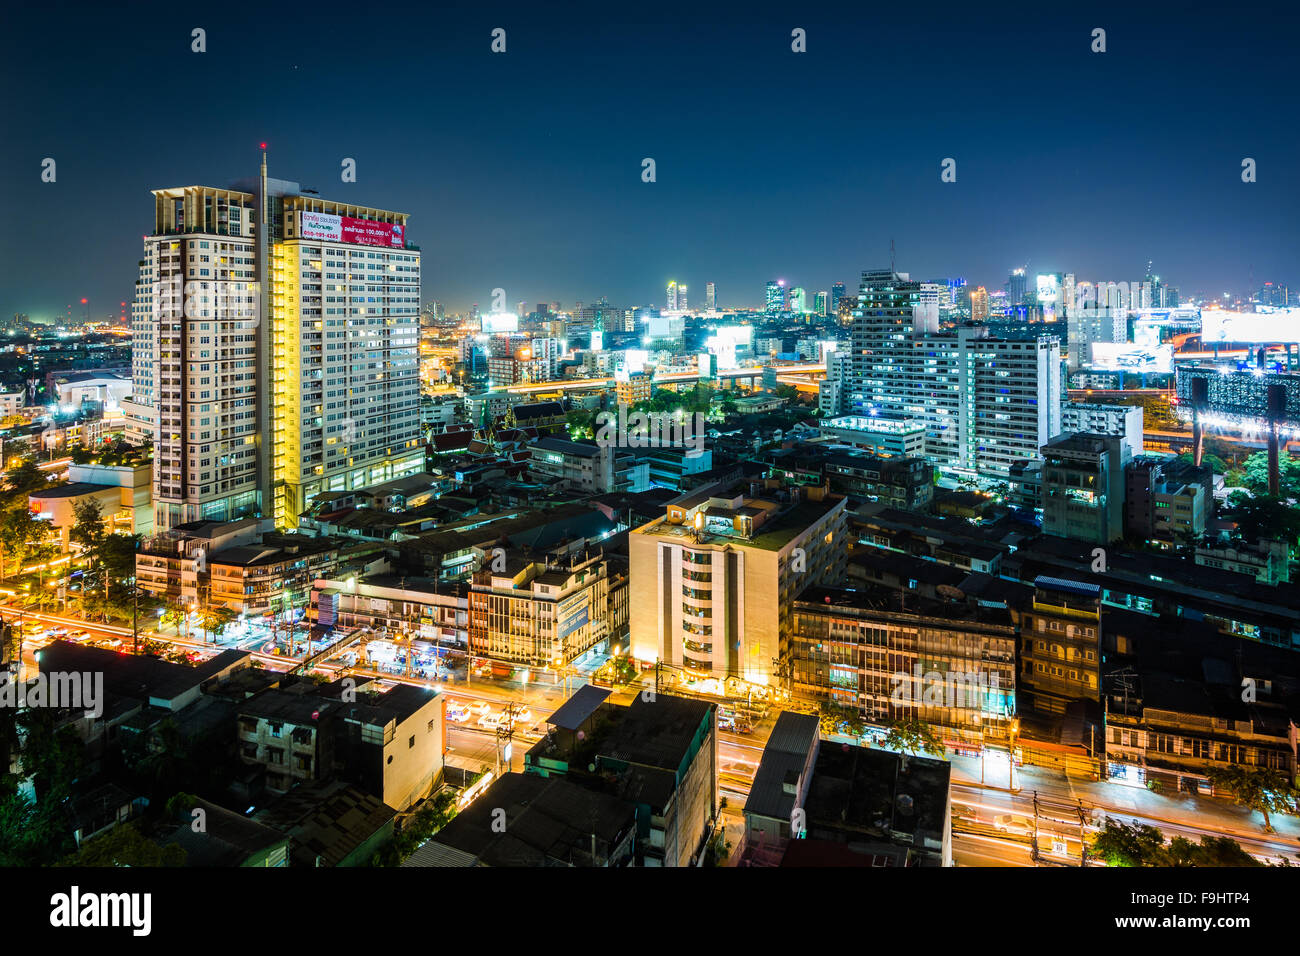 View of the Ratchathewi District at night, in Bangkok, Thailand. - Stock Image